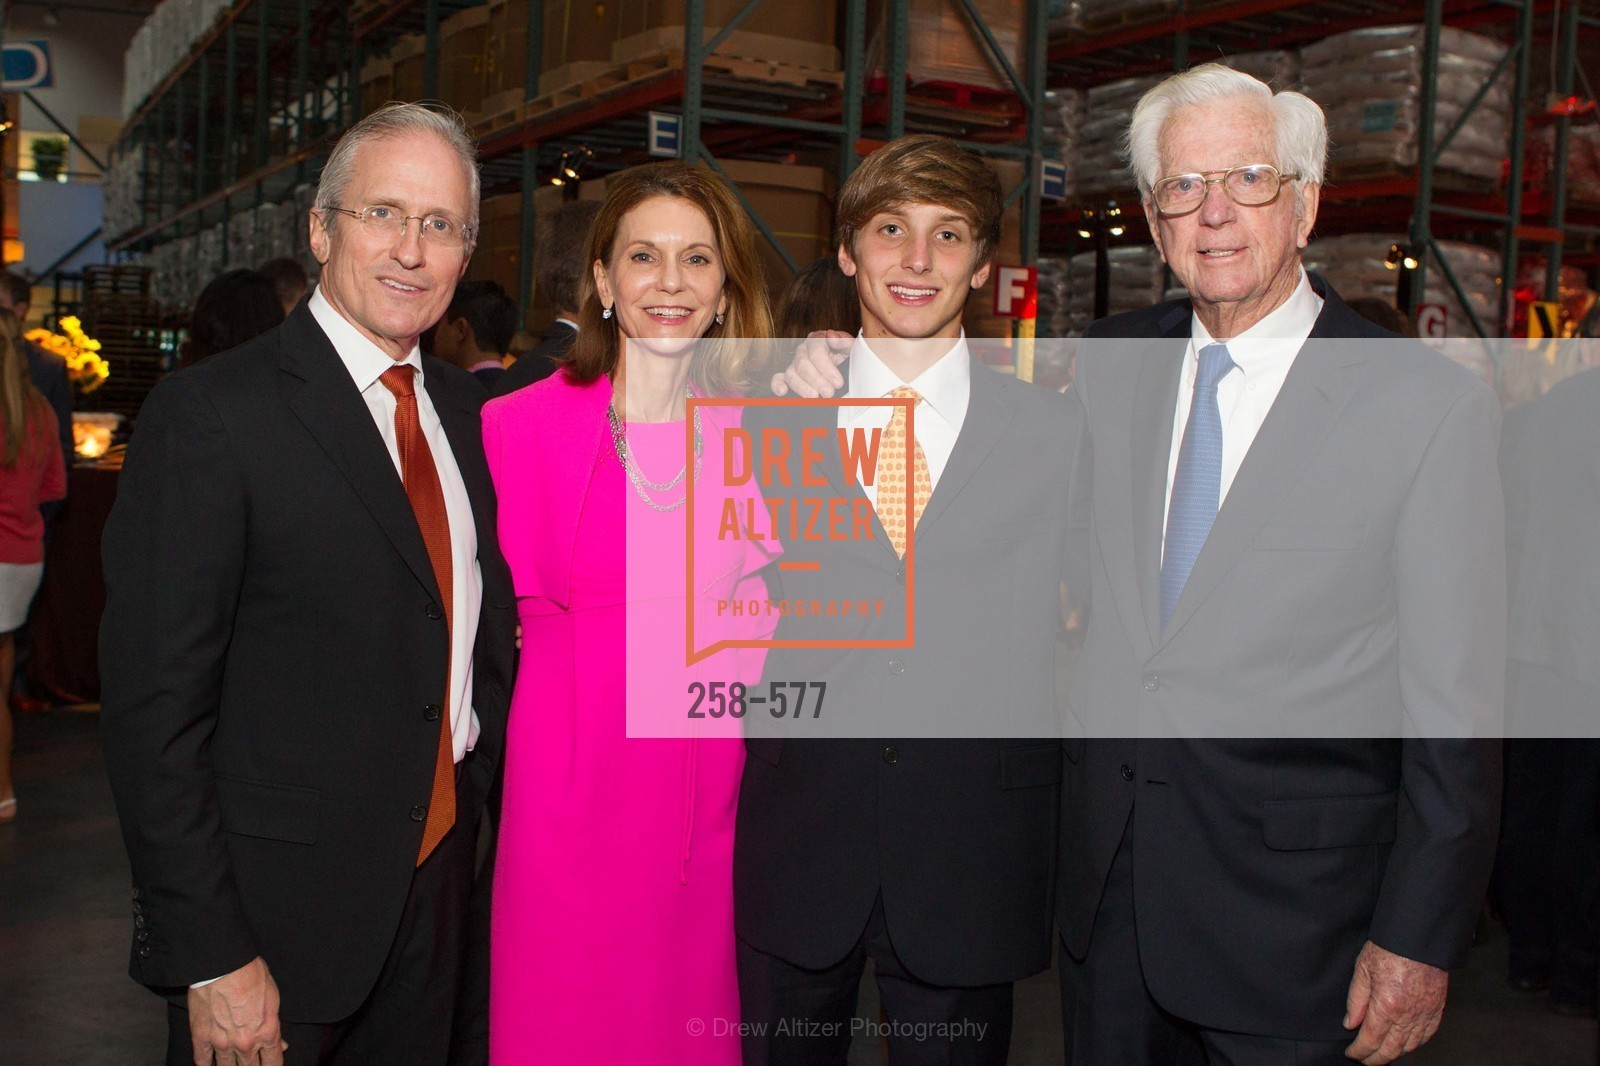 Jim Coulter, Penny Coulter, Wyeth Coulter, SF-MARIN FOOD BANK One Big Table Gala, US, September 27th, 2014,Drew Altizer, Drew Altizer Photography, full-service agency, private events, San Francisco photographer, photographer california